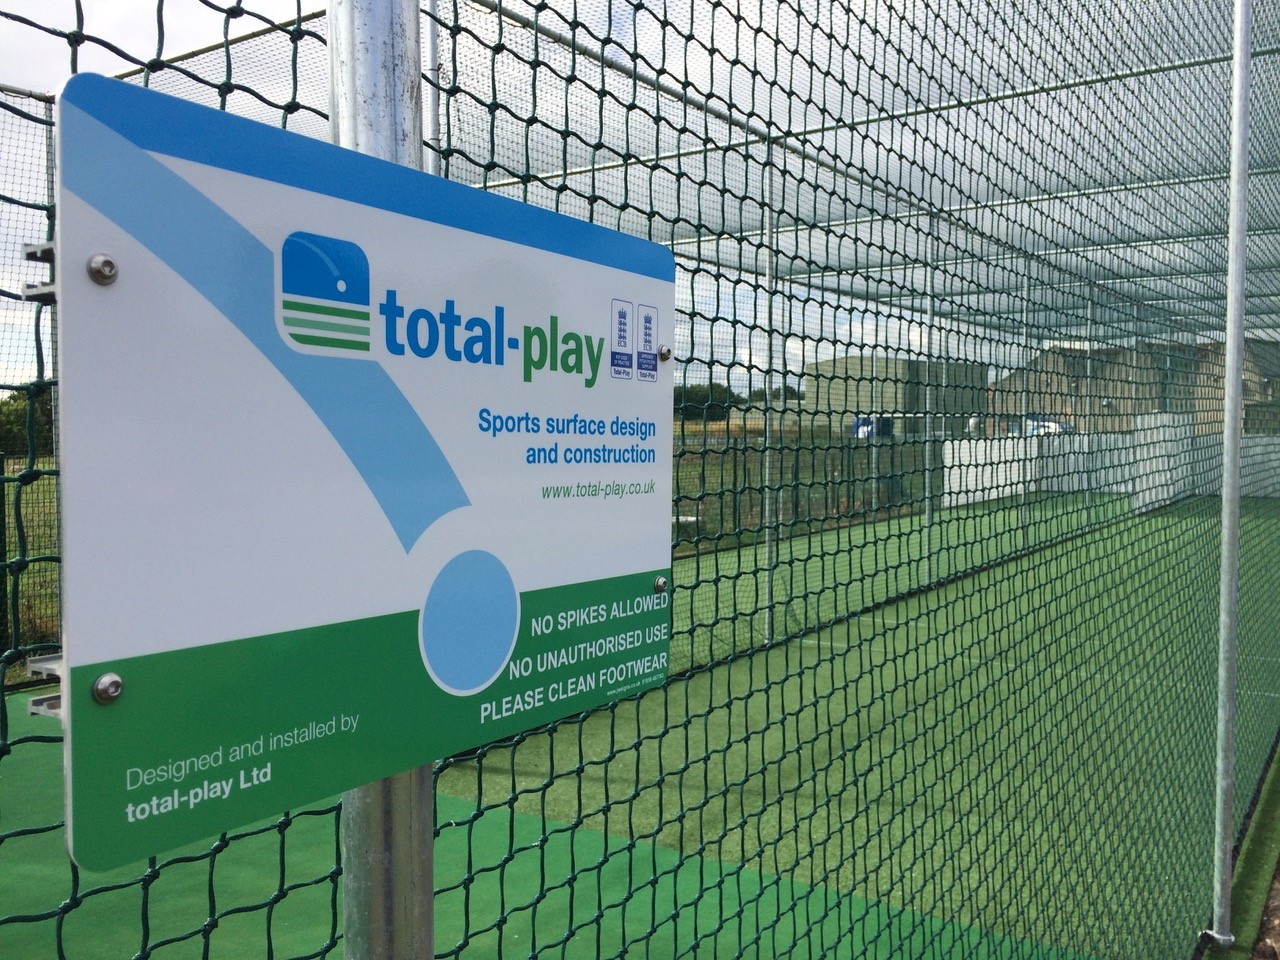 total-play ECB approved non turf cricket pitch in new practice nets facility at Low Moor Holy Trinity CC